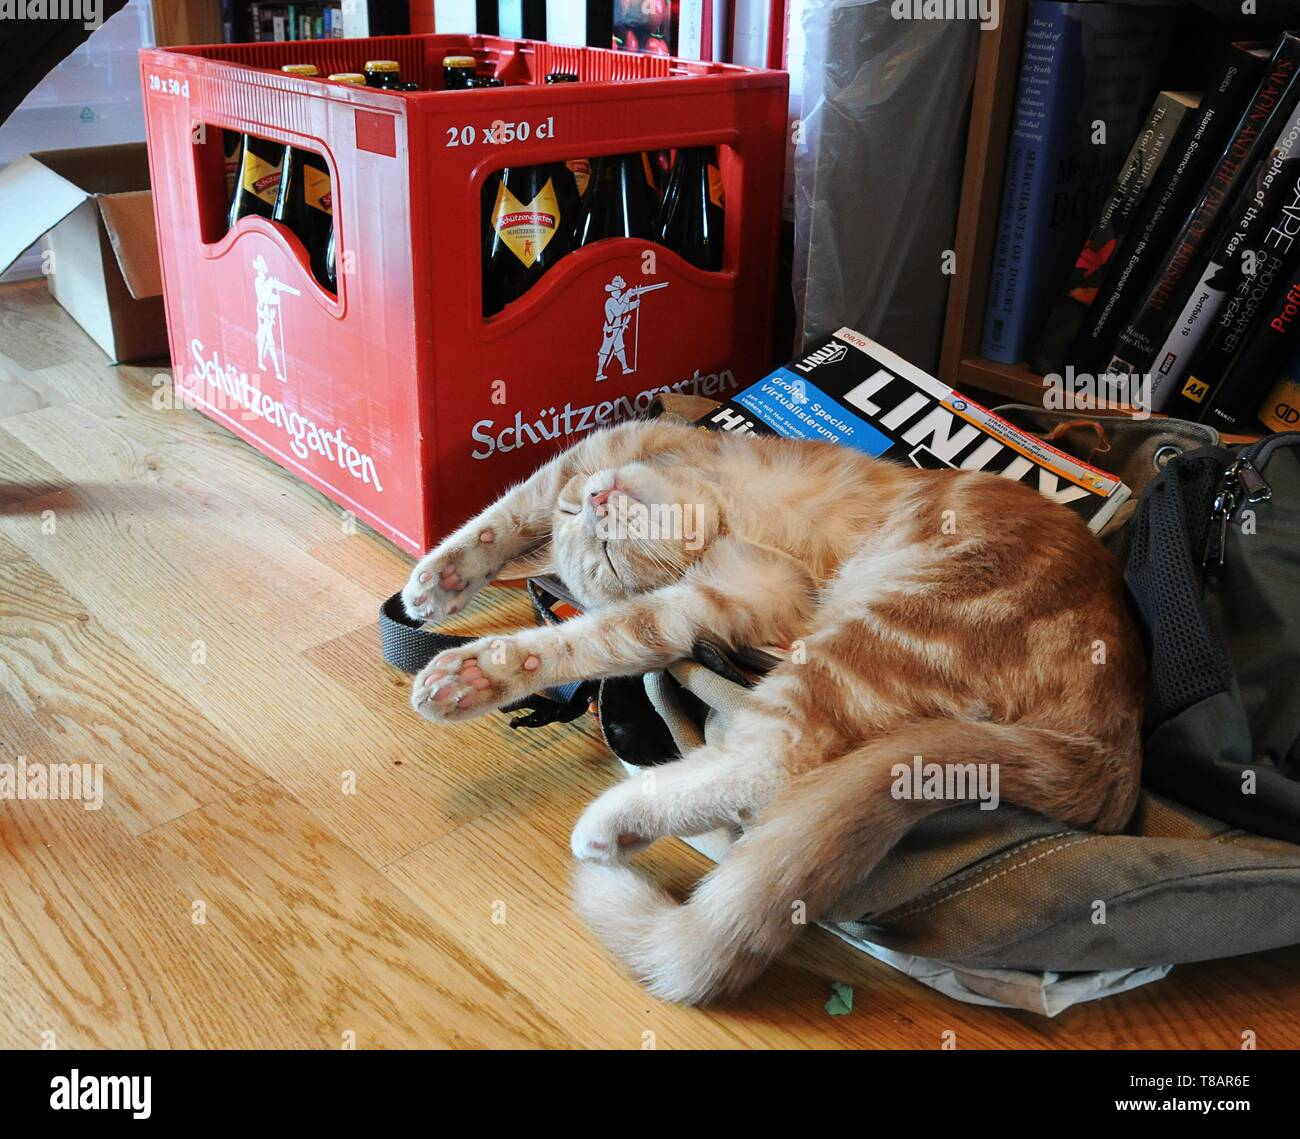 Party cat; teenaged ginger tom recovering next to beer bottles and nerdy magazine - Stock Image